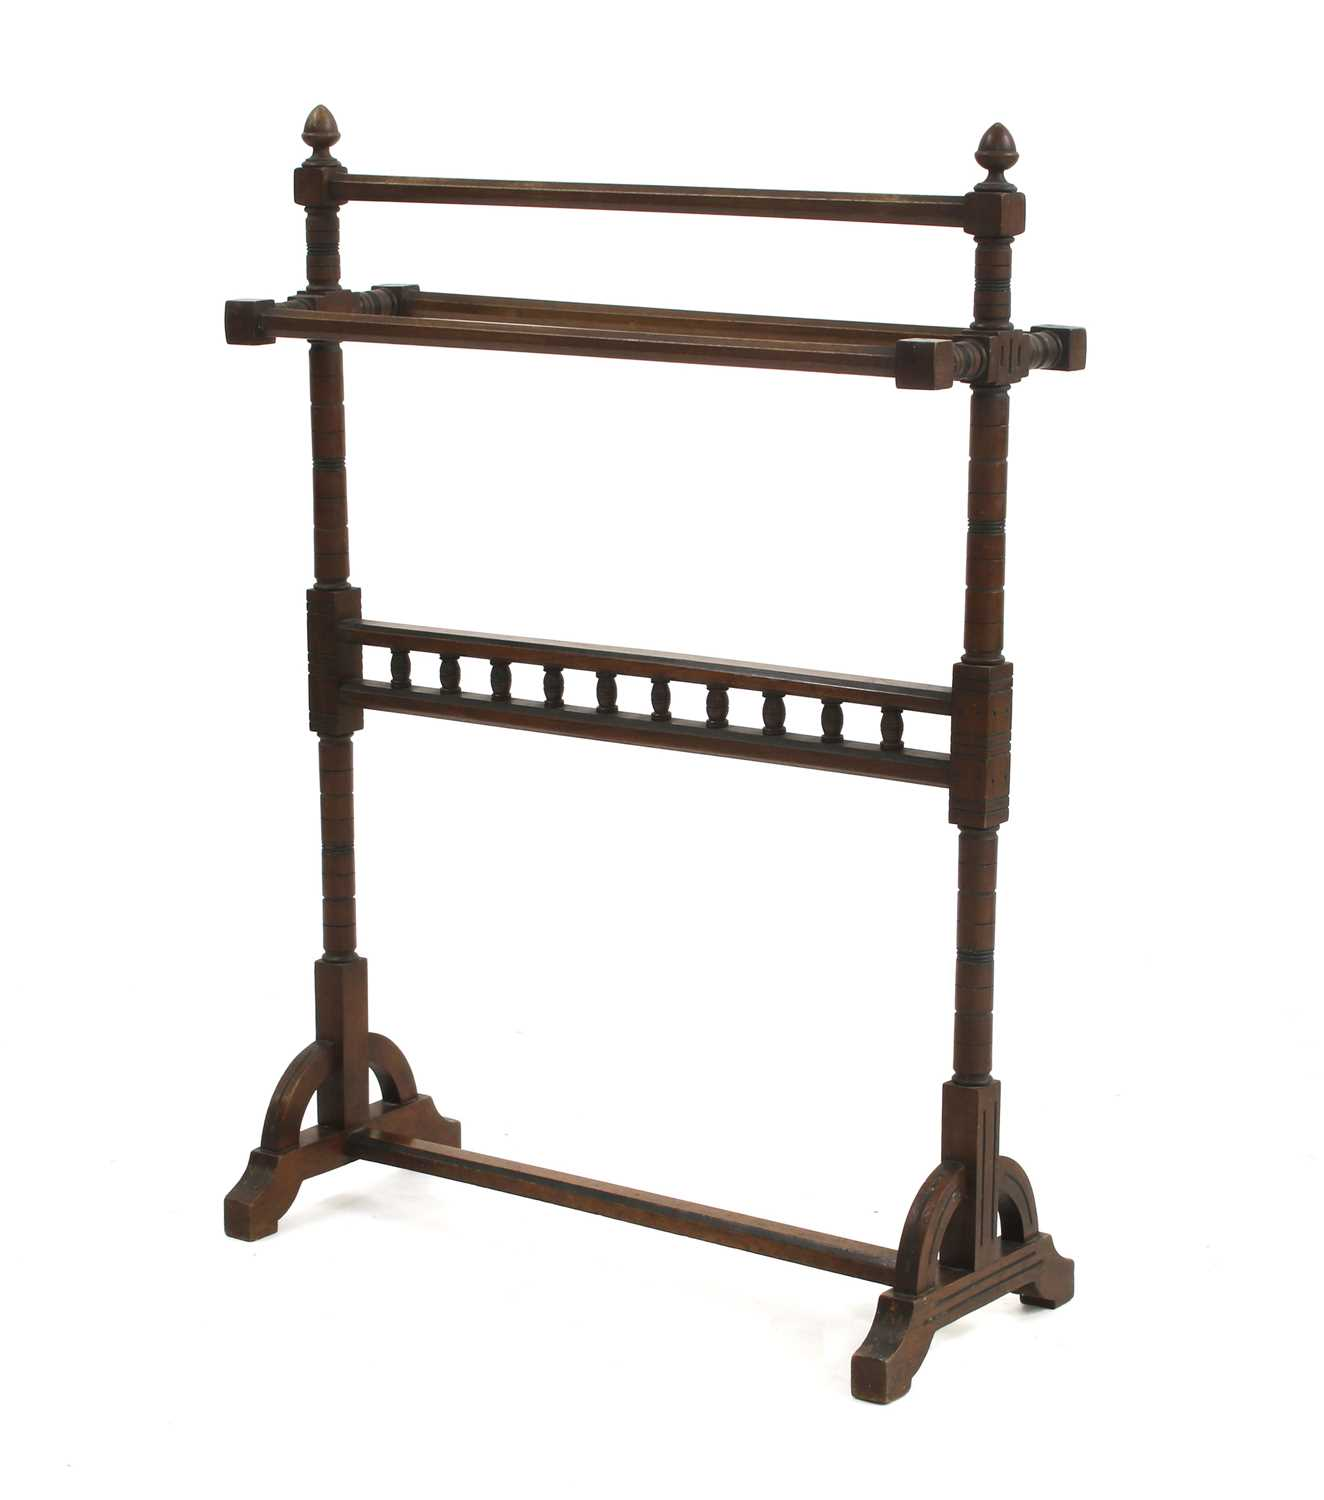 Lot 7 - An Arts and Crafts walnut towel rail